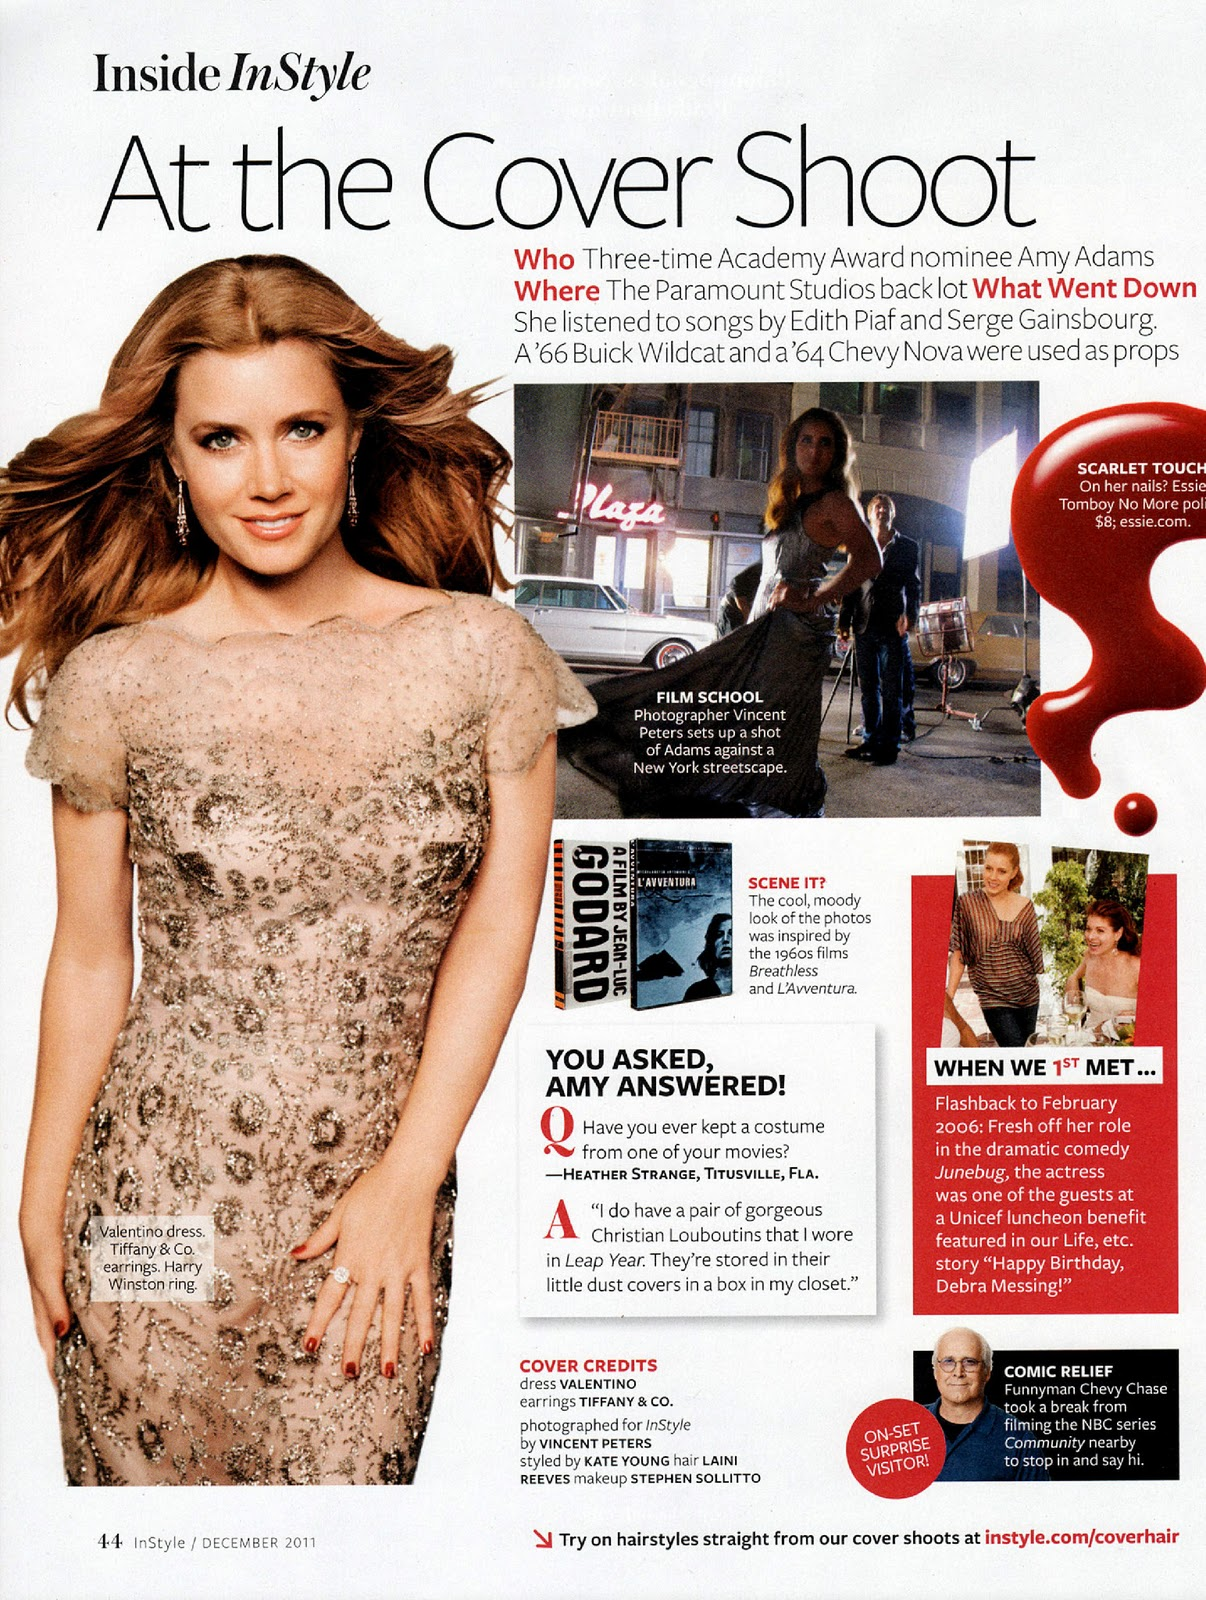 http://3.bp.blogspot.com/-2CIyGq9nDpY/TsXlM7XOZUI/AAAAAAAAMUY/QySs_eBHORA/s1600/Amy_Adams.INSTYLE.December_2011.Scanned_by_KROQJOCK.HQ.2_122_410loedited.jpg